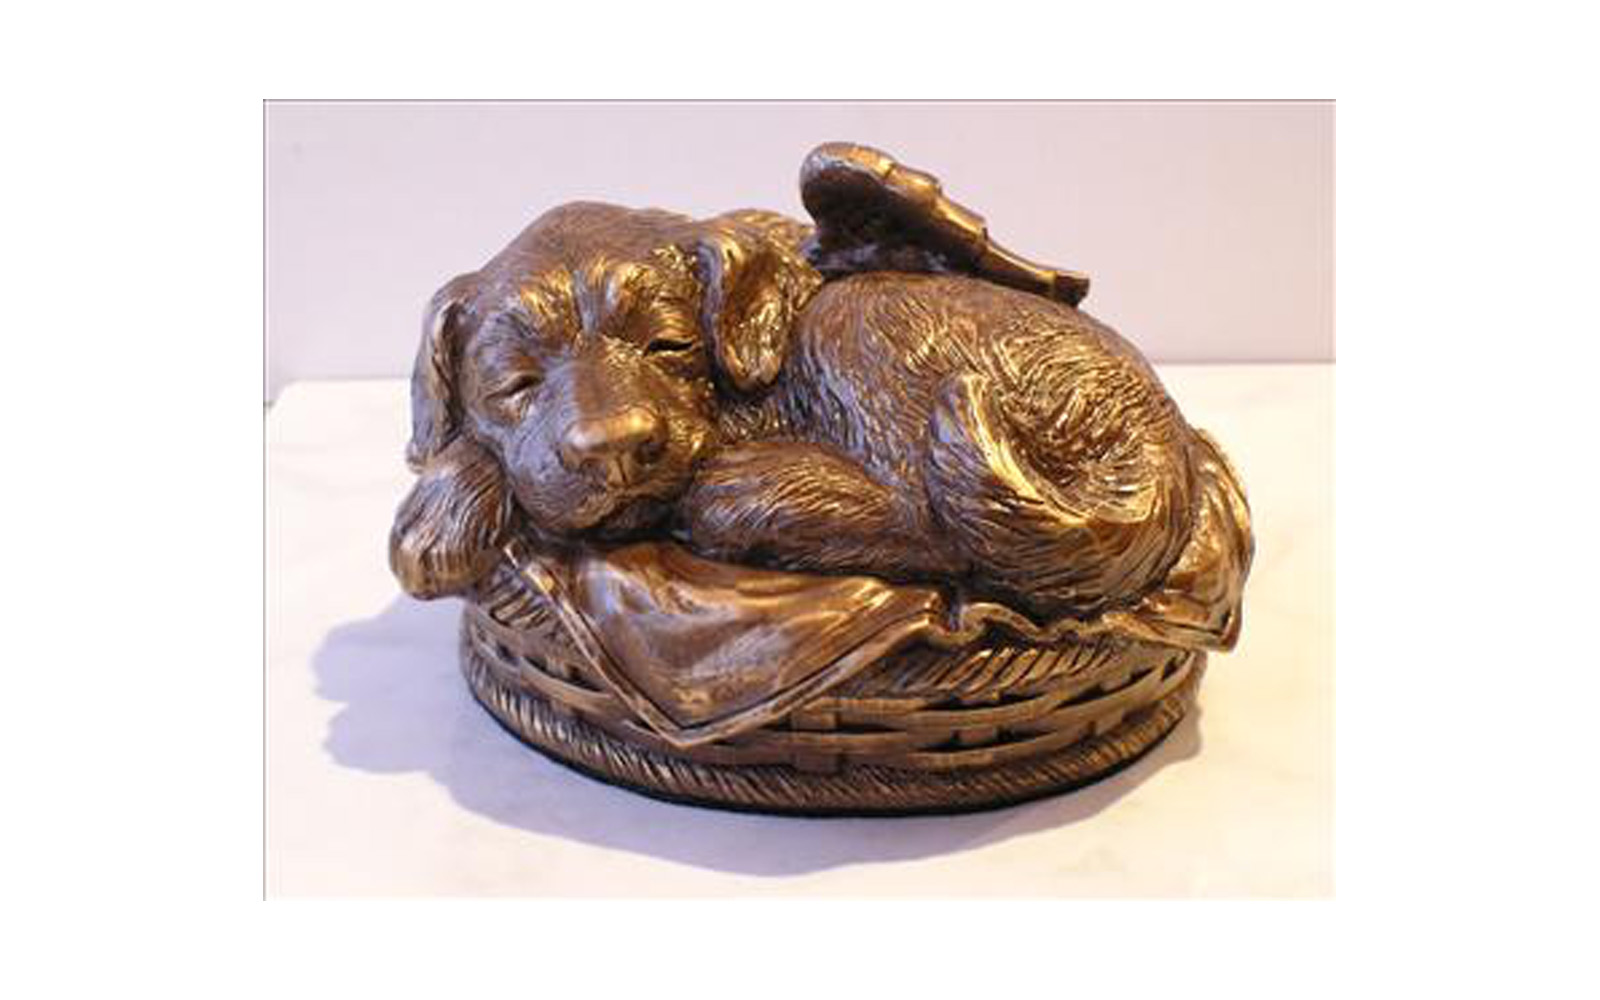 "Angel Dog Urn   Made of a cold cast bronze (polymer with bronze additive). This piece is available with a personalized laser engraved heart name tag on the collar. Cremated remains are stored through the bottom.   Small size measures : 7.5"" L x 6.5"" W x 4.5"" H, 50 Cu. Inches, up to 50 lbs.  Available in Black, White, Bronze, Verdigris, Metallic, Metallic with Bronze Finish, Metallic with Silver/Stainless Steel Finish, Metallic with Copper Finish colors.   $105  without engraving   $125  with engraving   Large size measures : 9"" L x 7.5"" W x 5"" H, 100 Cu. Inches, up to 100 lbs.  Available in Black, White, Bronze and Verdigris colors.   $125  without engraving   $145  with engraving"